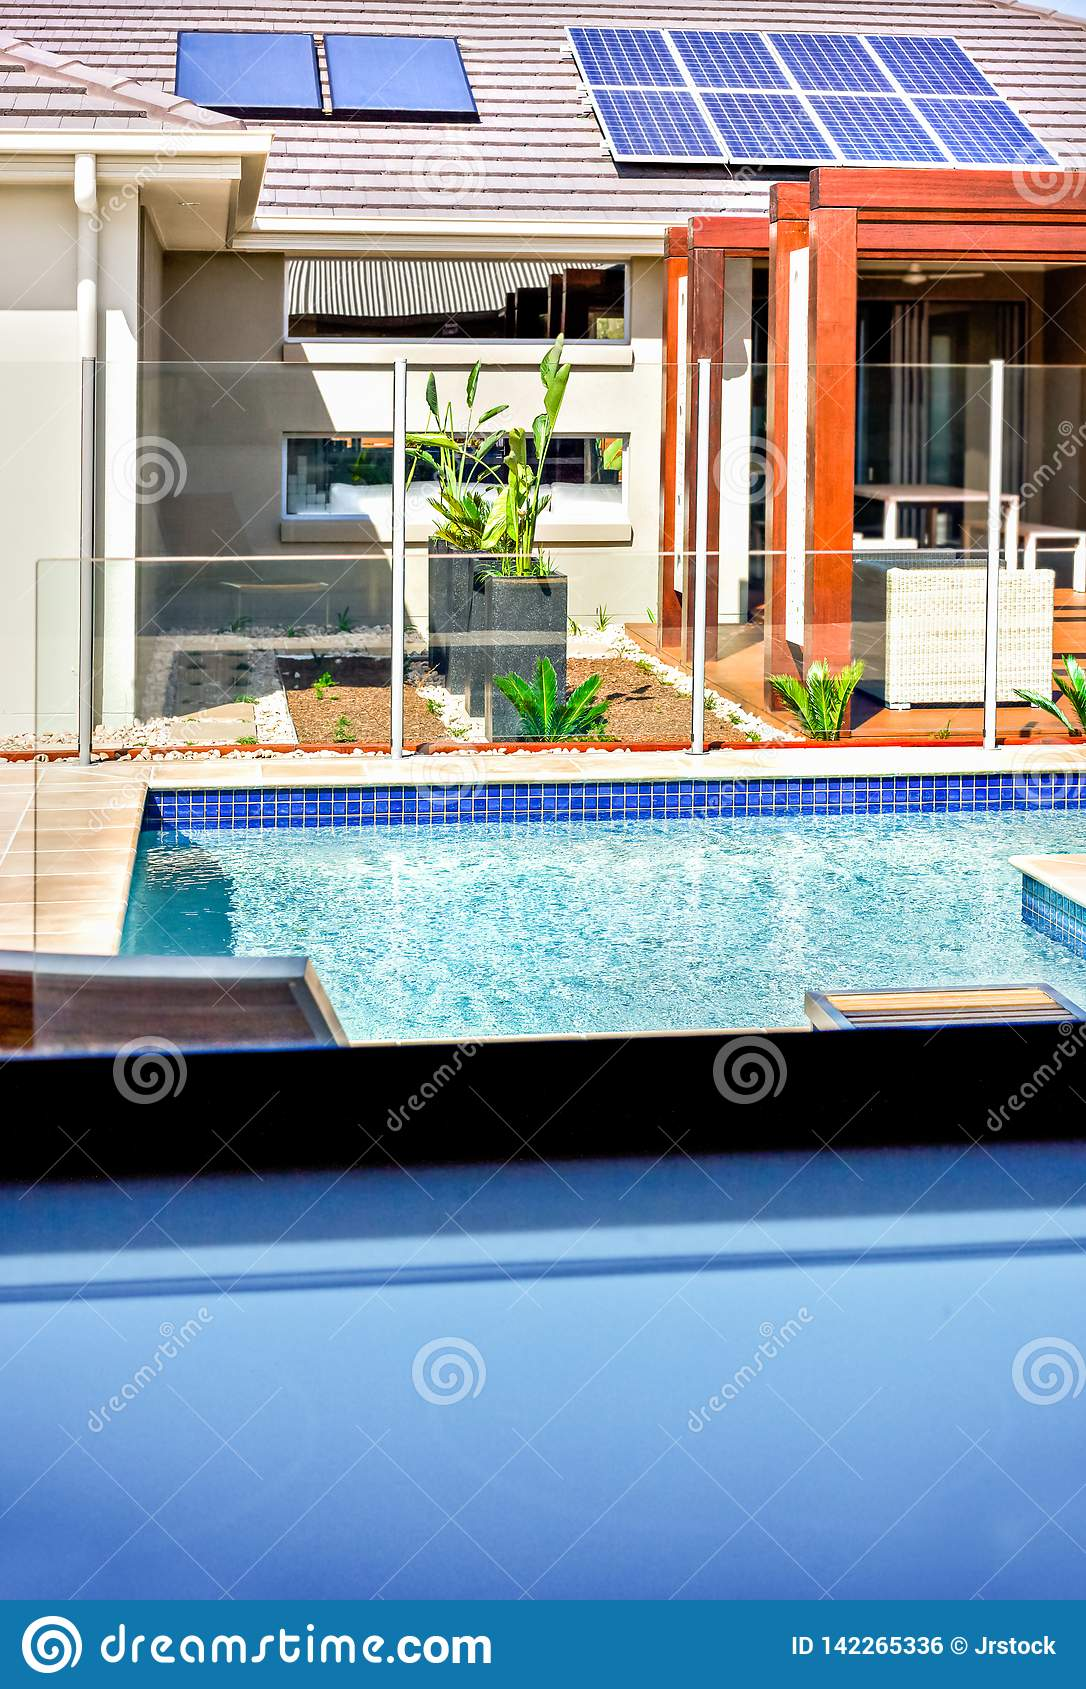 https www dreamstime com view modern swimming pool house solar panels roof patio area can be seen glass window covers chair image142265336